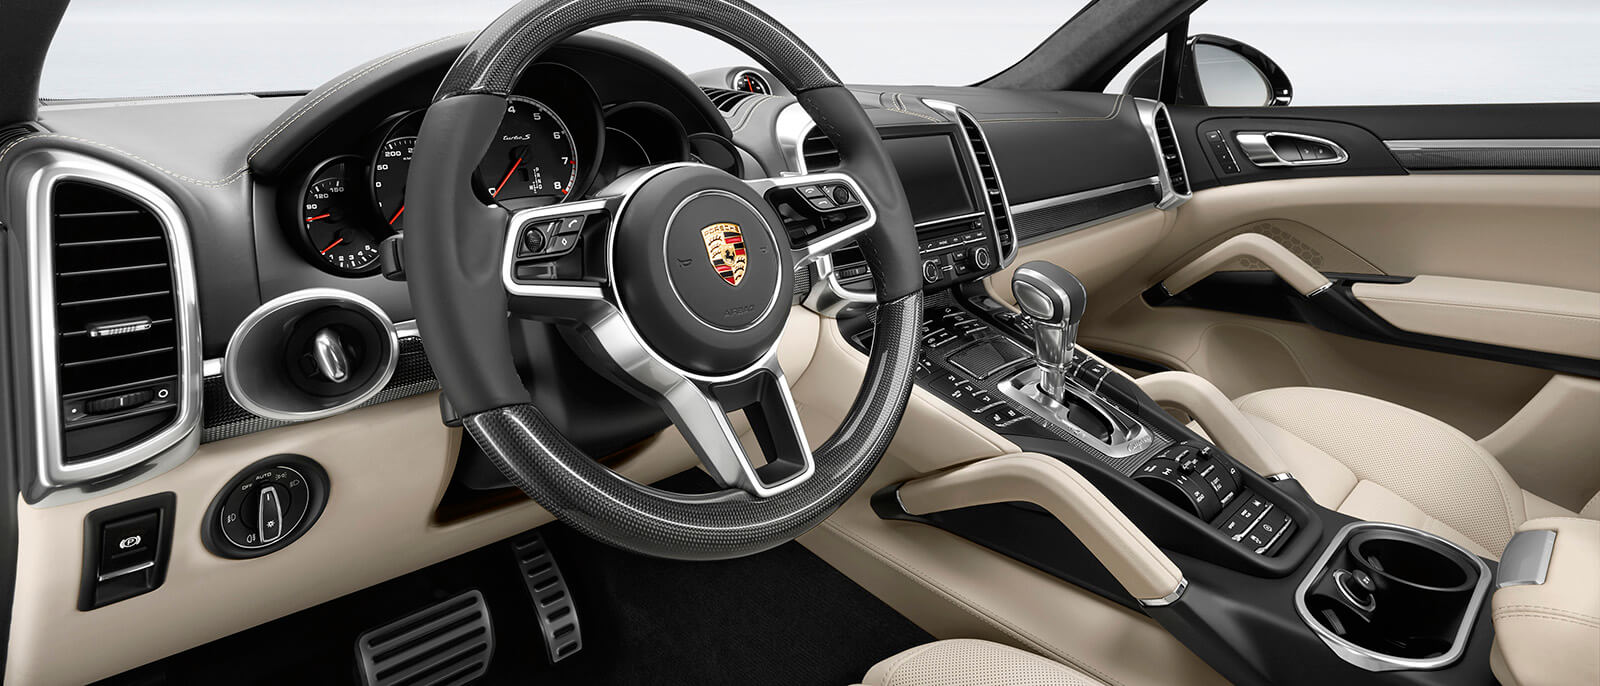 2017 porsche cayenne turbo s model info porsche orland park. Black Bedroom Furniture Sets. Home Design Ideas